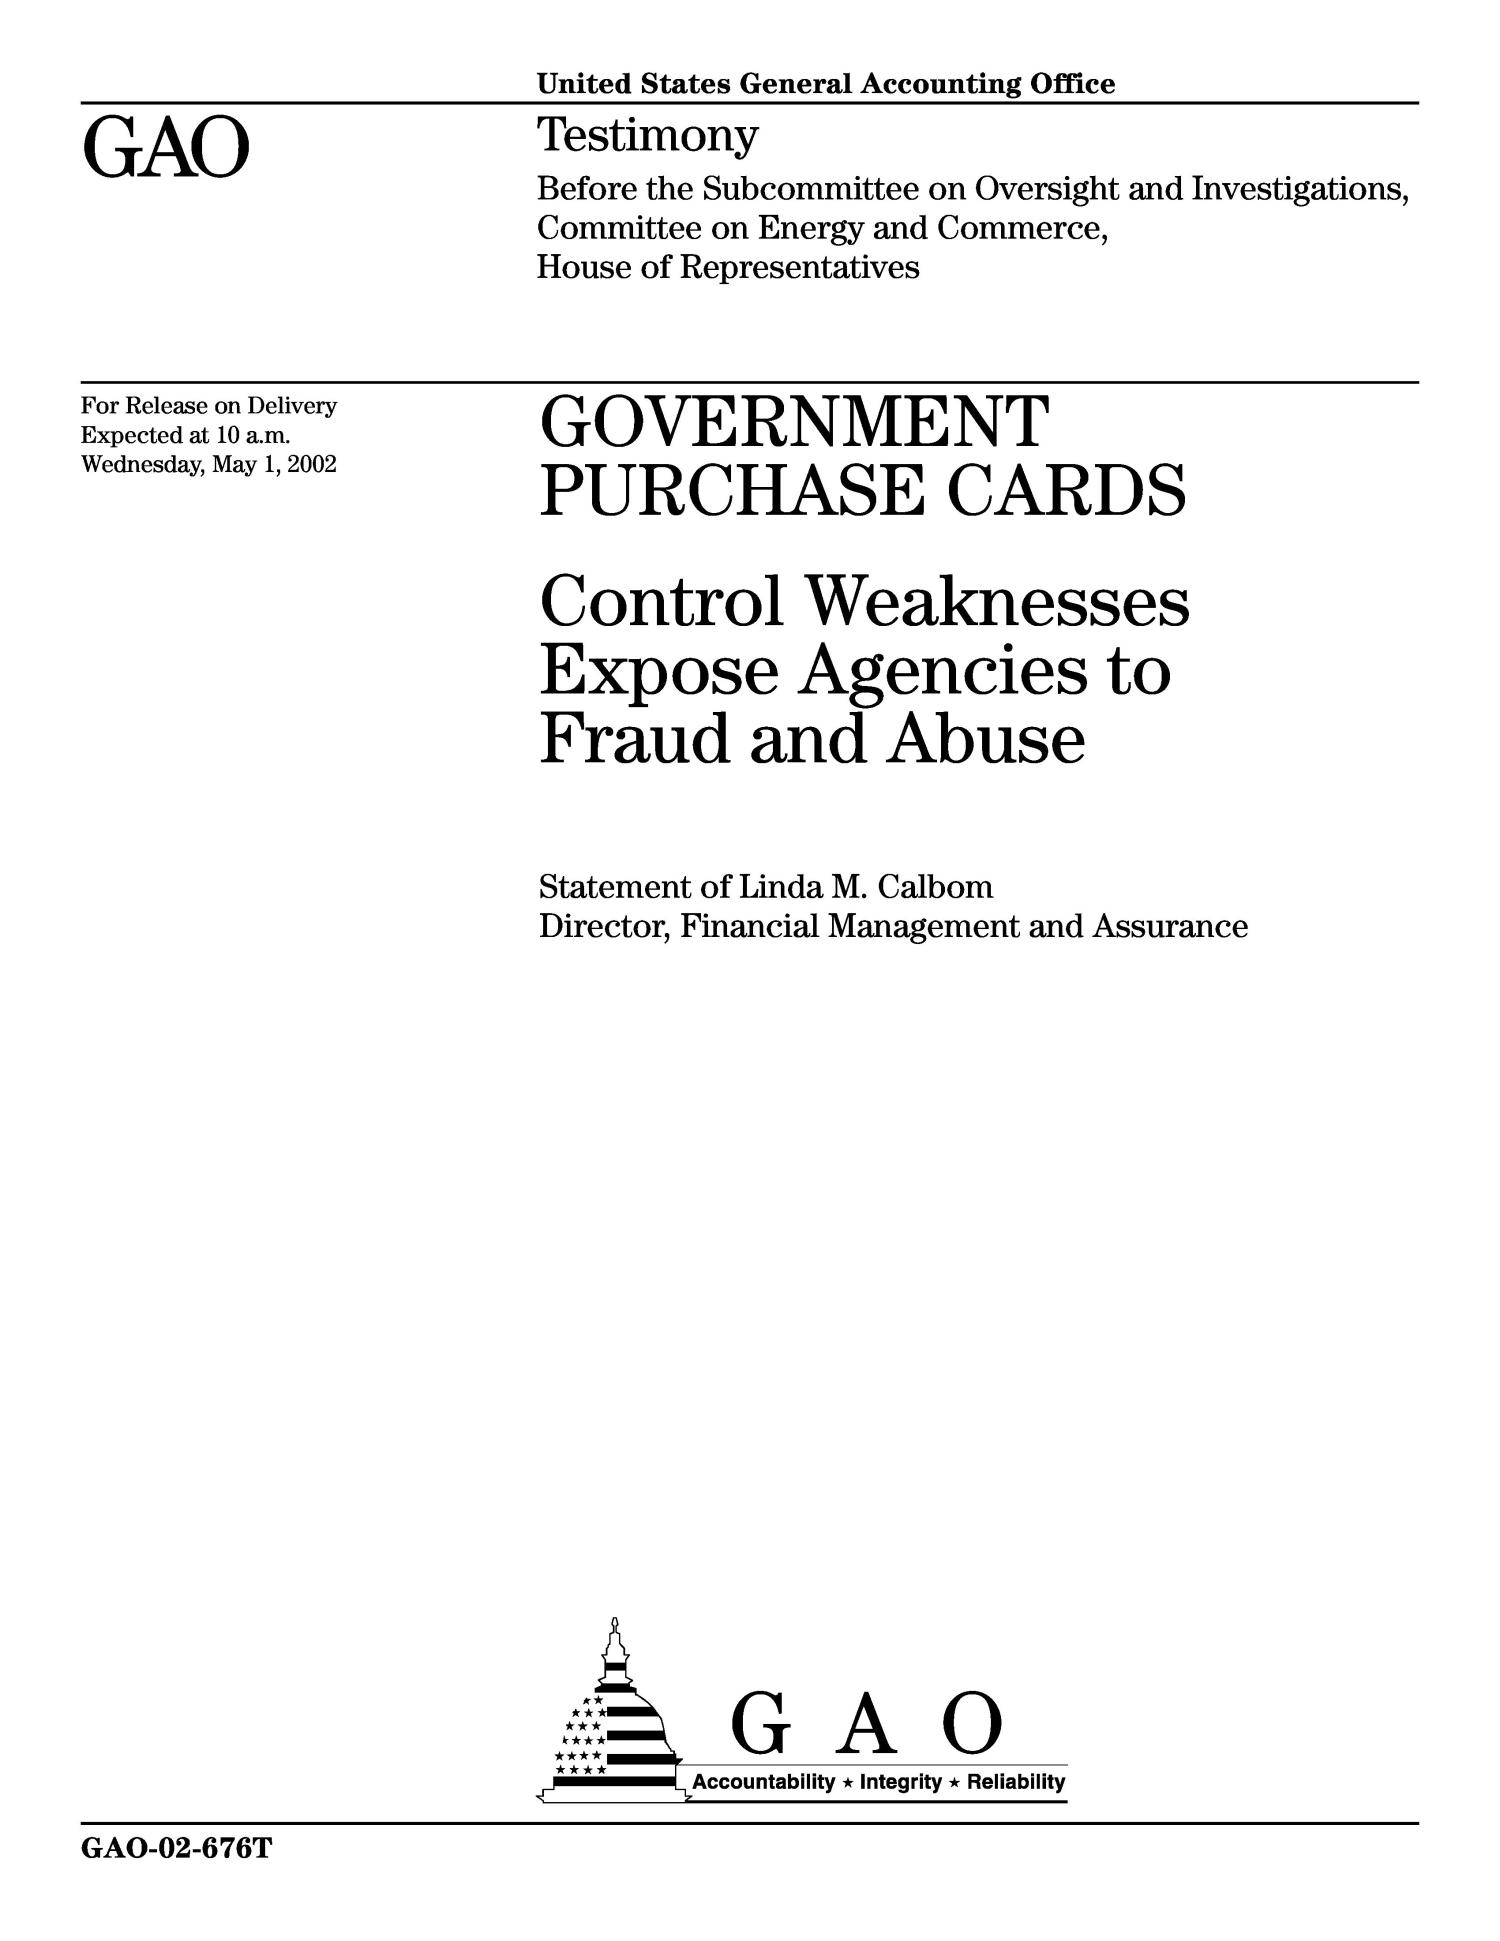 Government Purchase Cards: Control Weaknesses Expose Agencies to Fraud and Abuse                                                                                                      [Sequence #]: 1 of 14